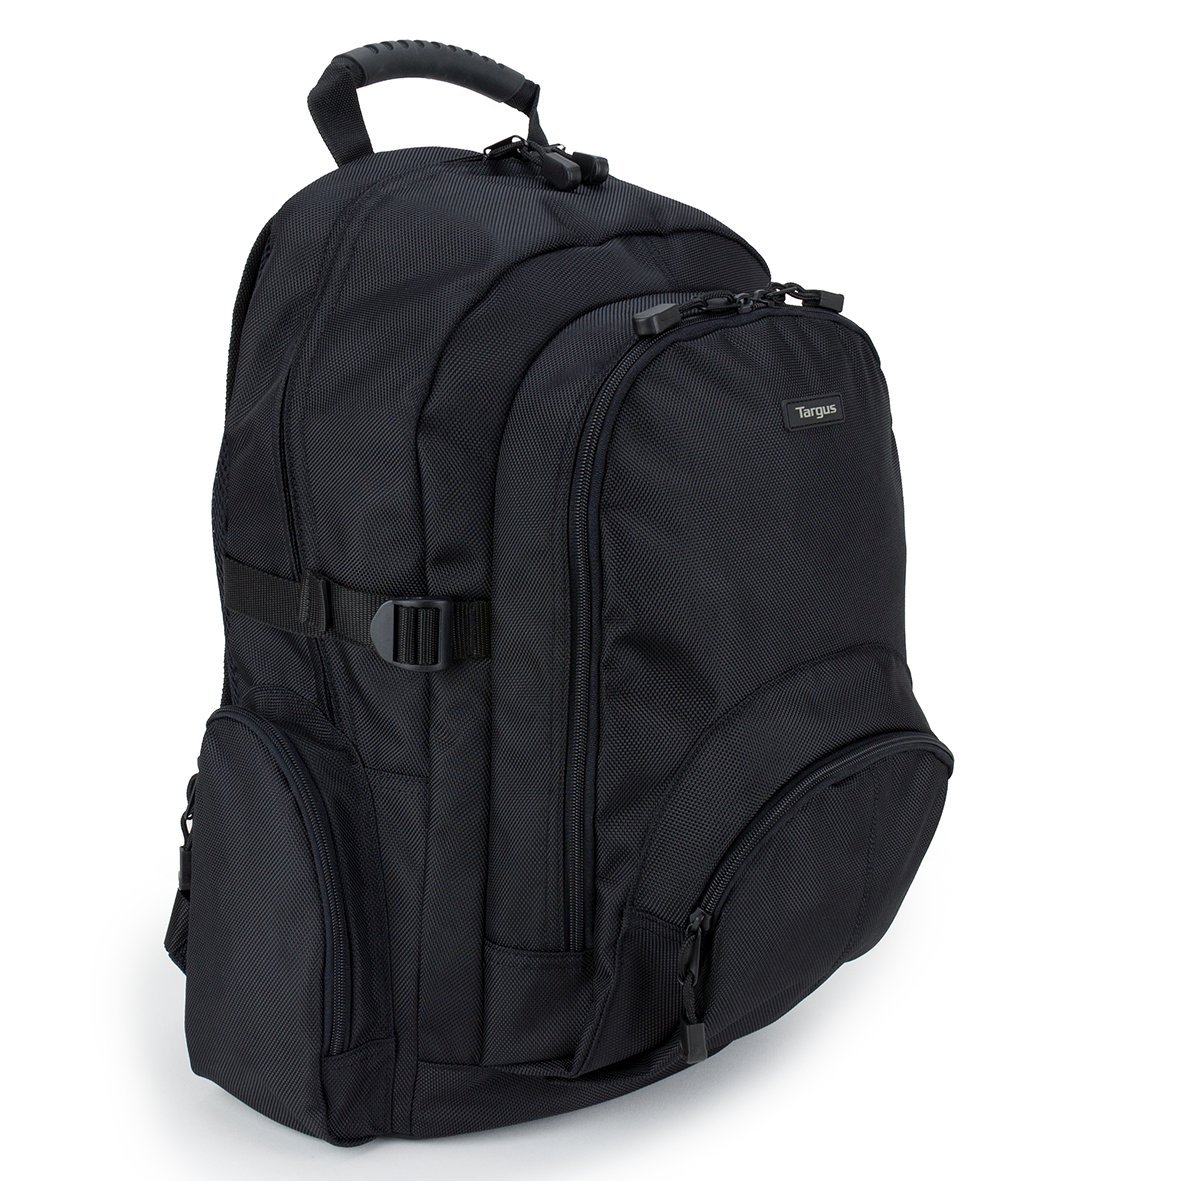 Amazon.com: Targus CN600 Notebook Backpac: Home Audio & Theater